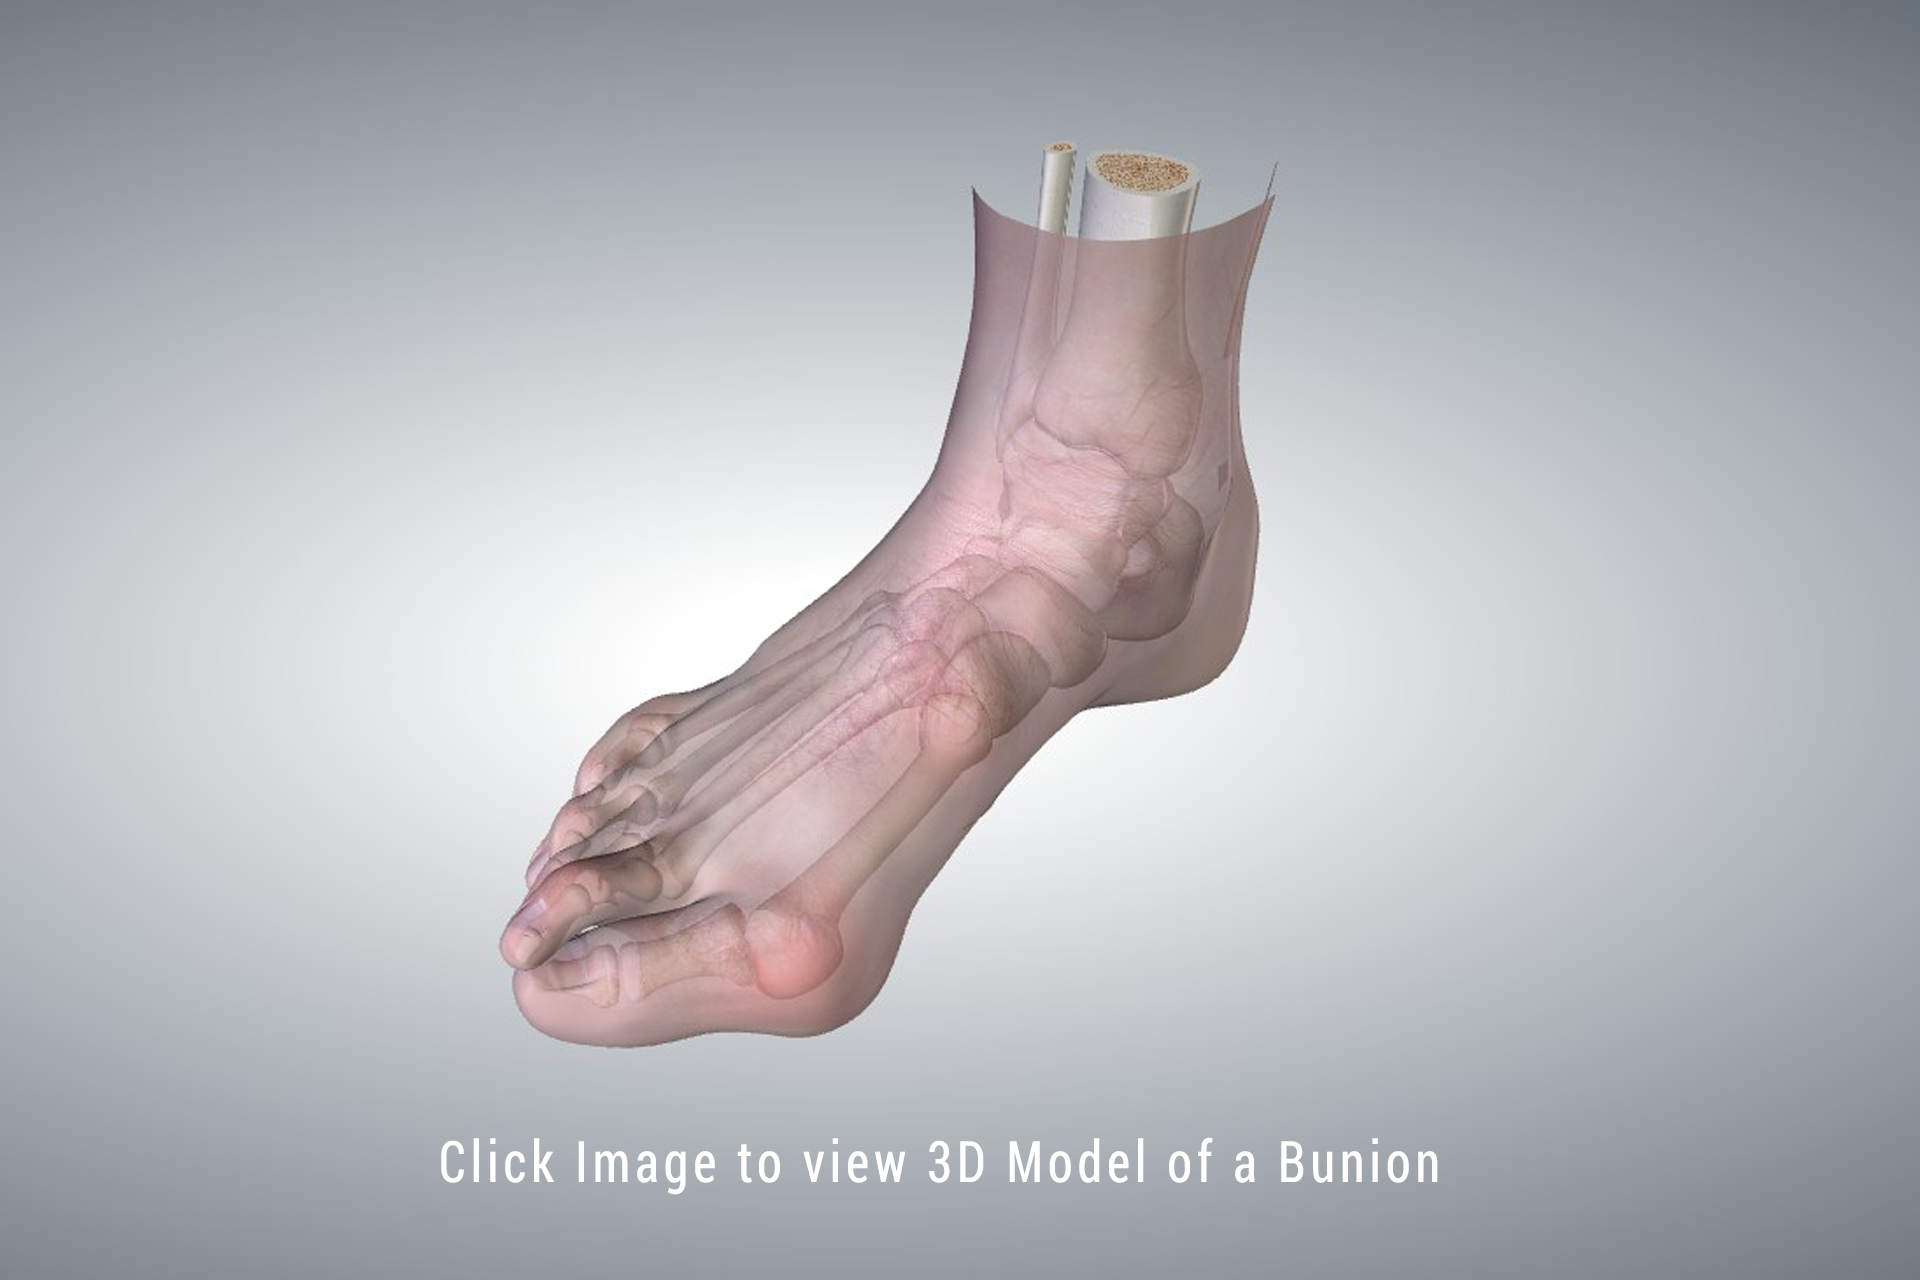 3d Model of Bunion